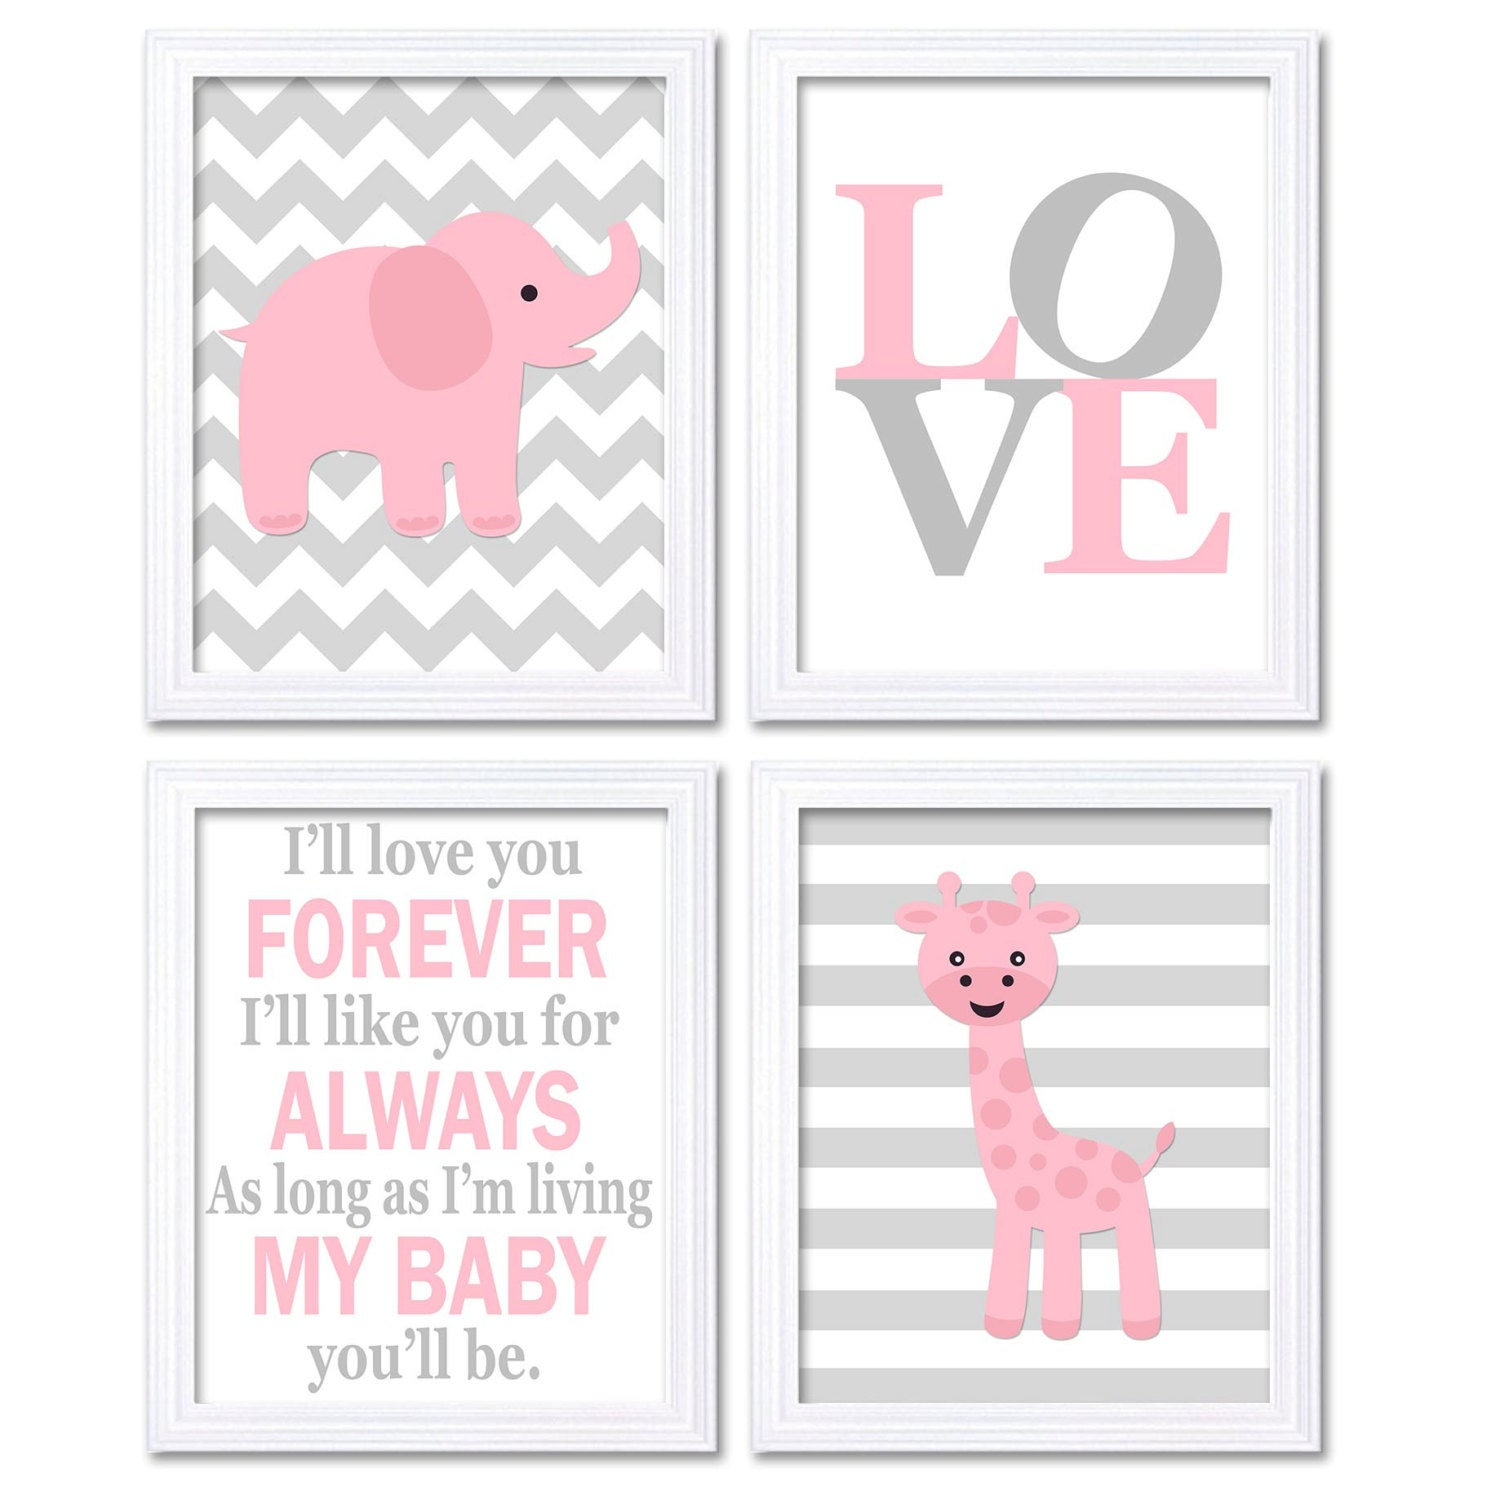 Elephant Nursery Art Giraffe Wall Decor Ill Love You Forever Set of 4 Prints Baby Pink Grey Child Ki